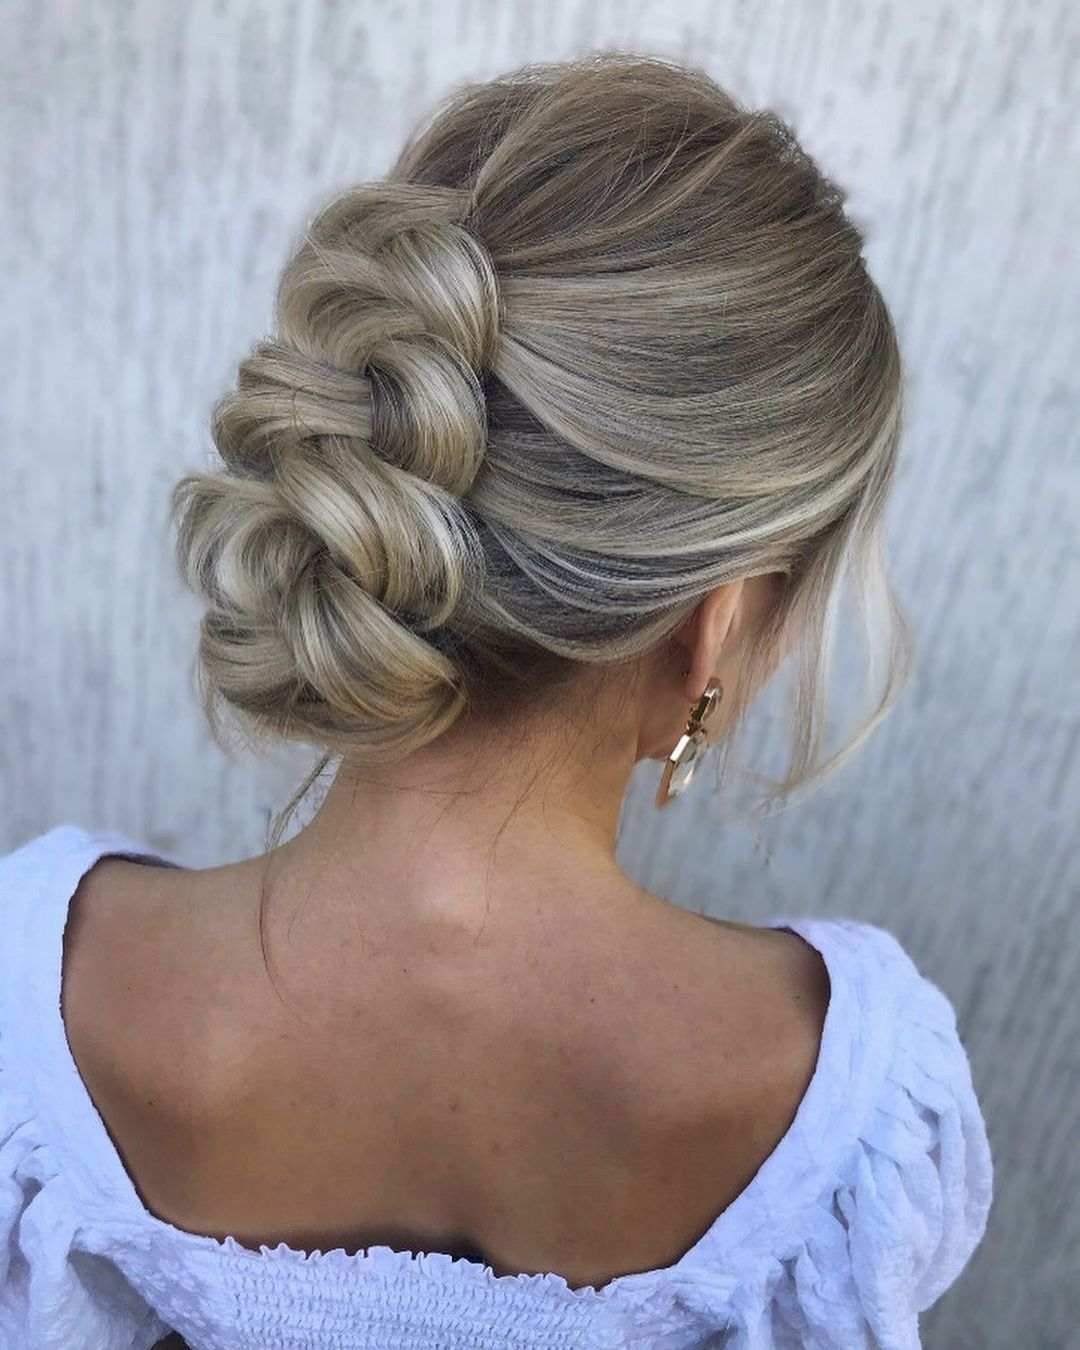 Blonde Braided Updo for Girls with Long Hair